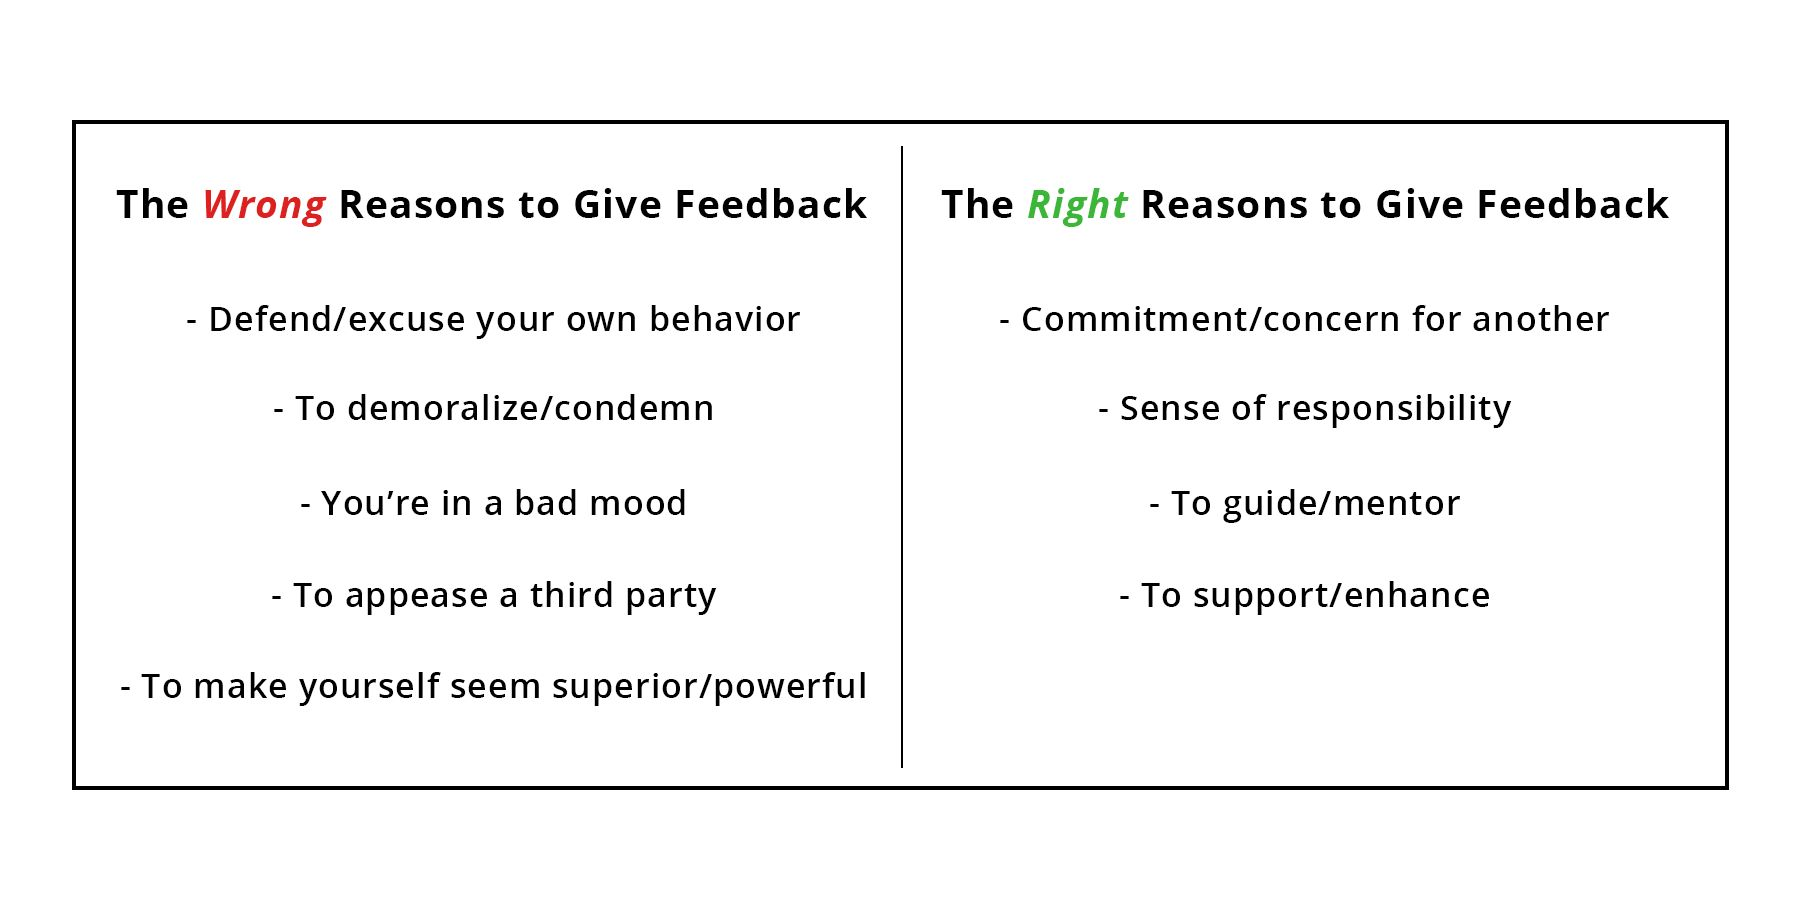 Right vs. Wrong reasons to give feedback